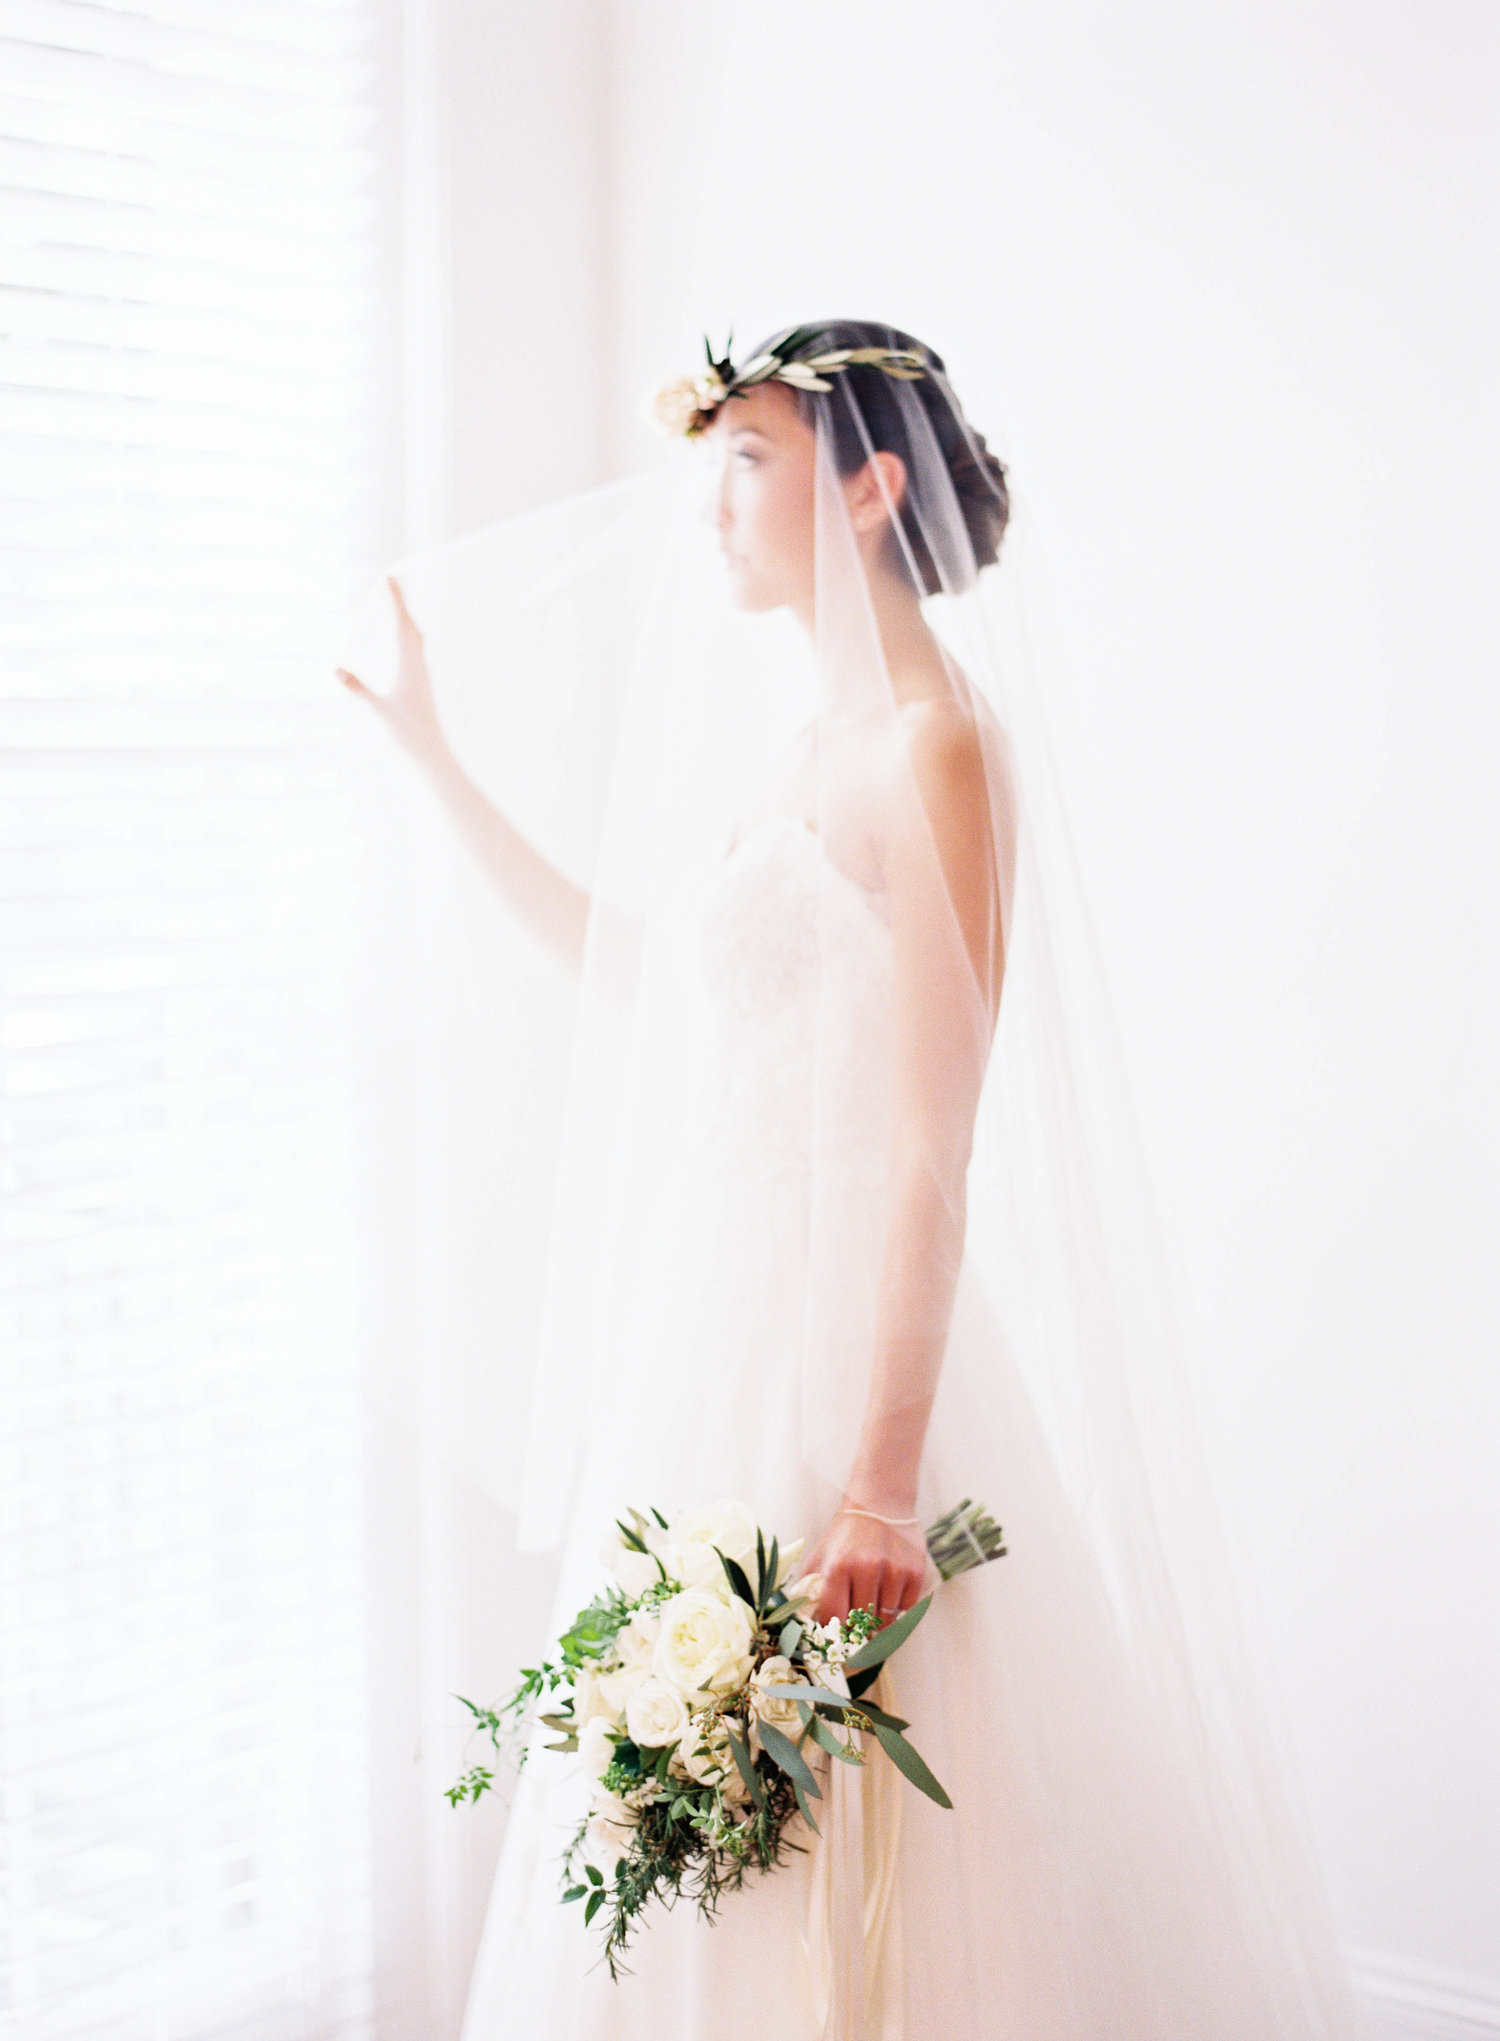 bride in wedding dress with floral head wreath and long sheer veil holding bouquet and looking out the window